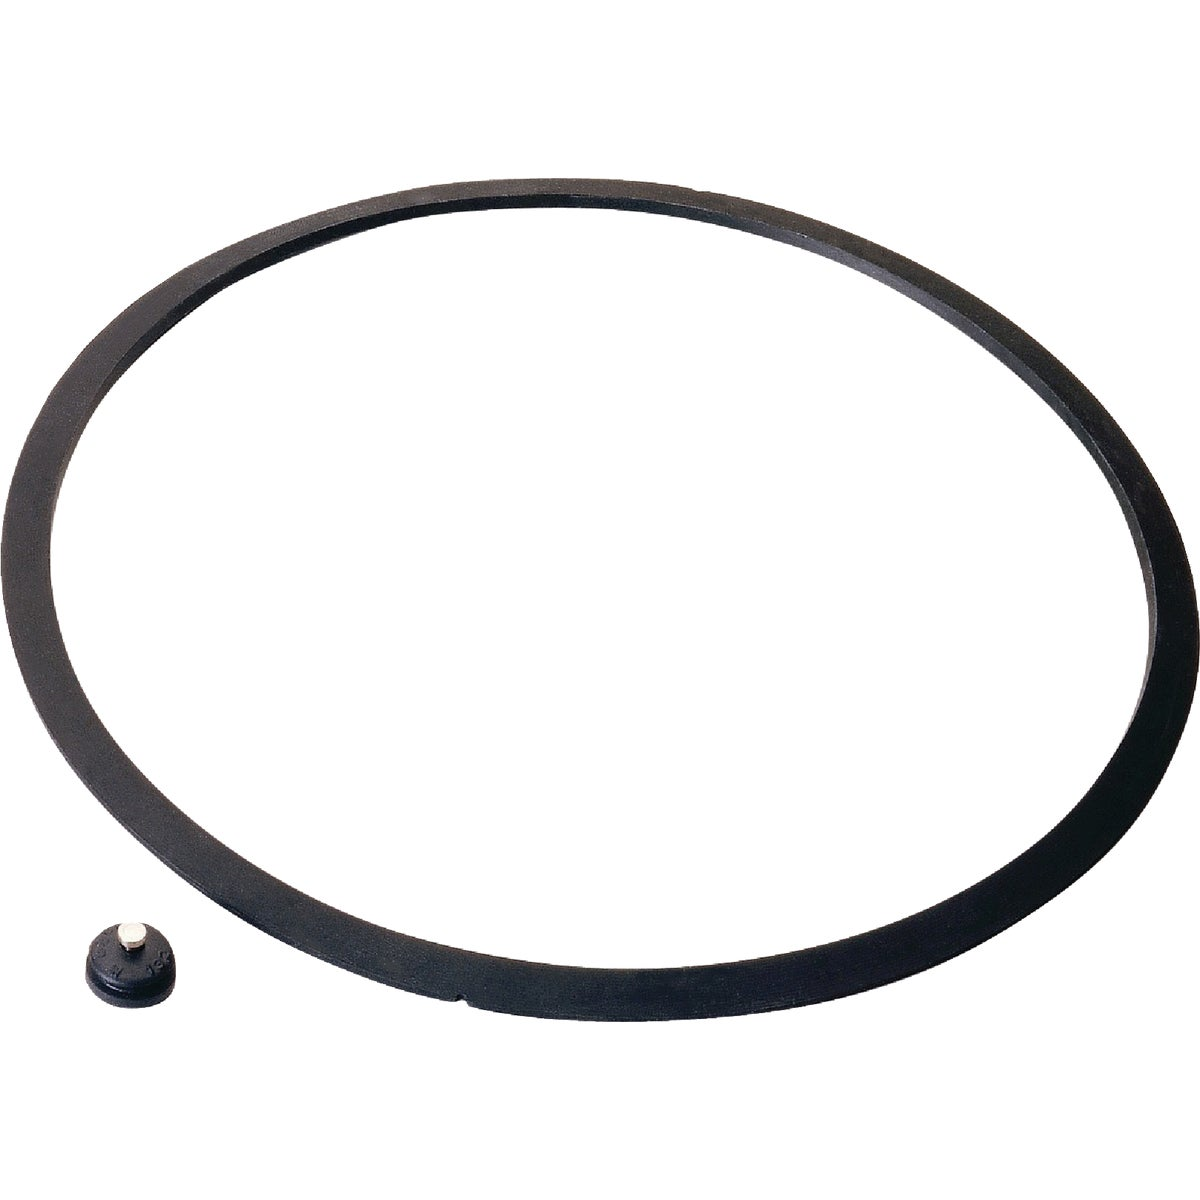 SEALING RING - 09907 by National Presto